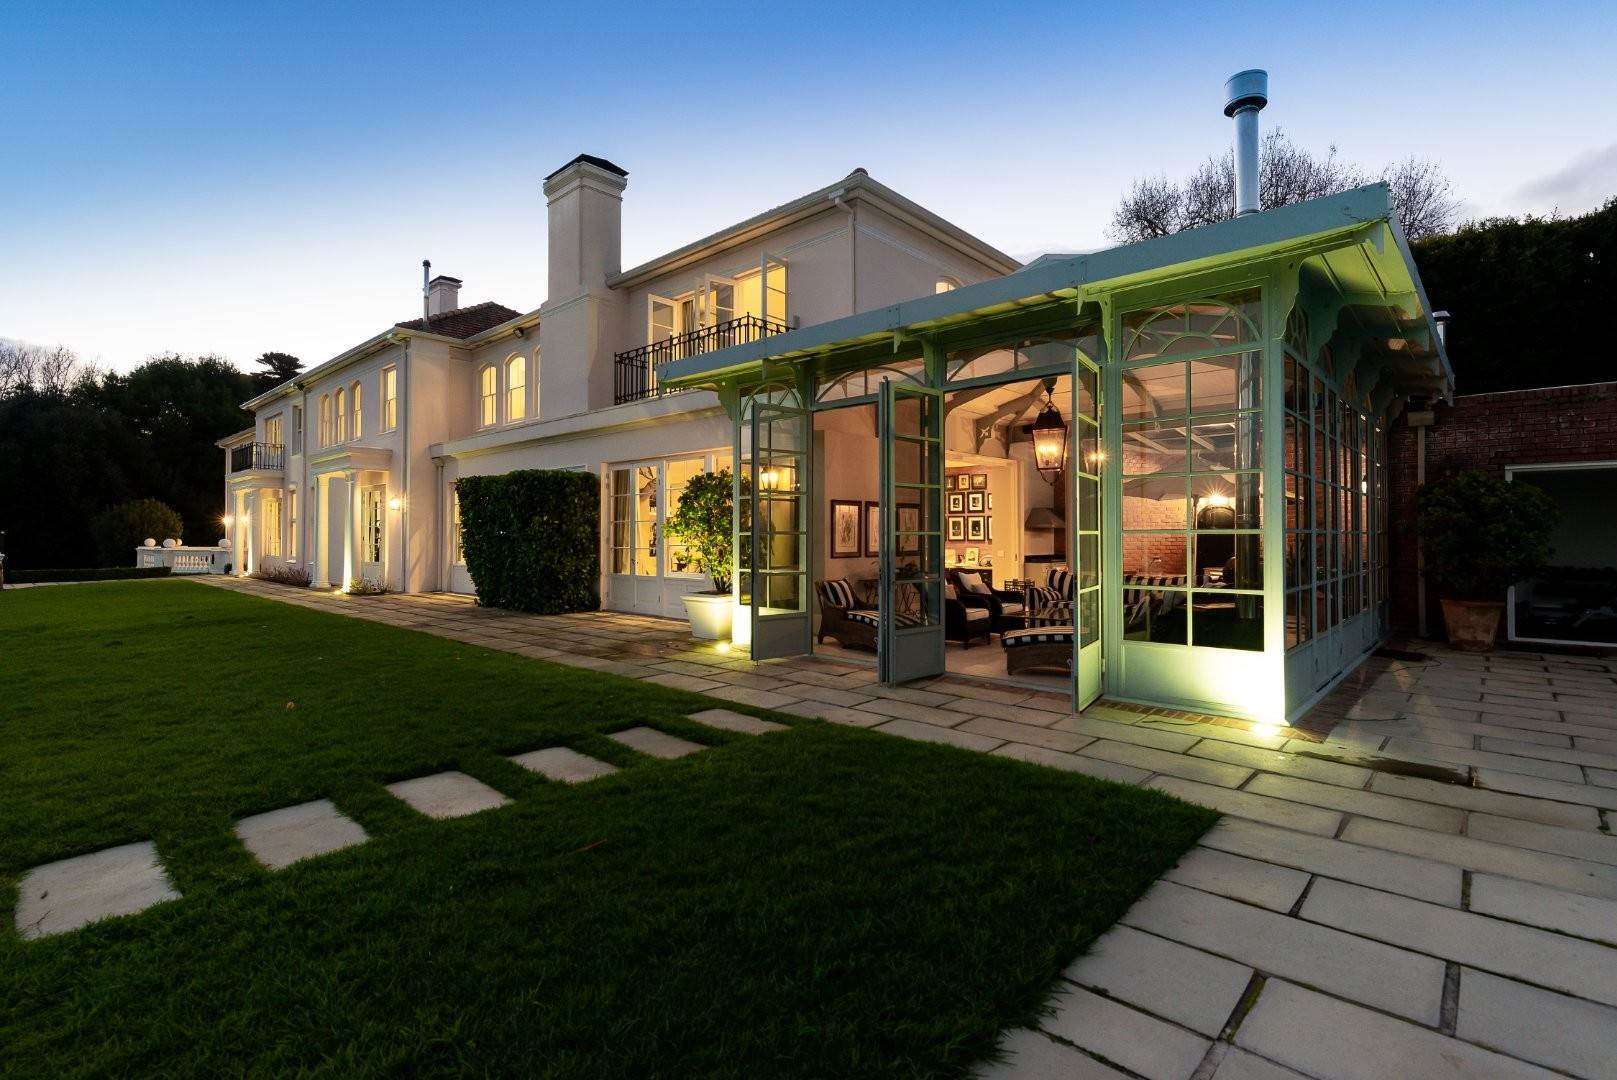 5. Estate for Sale at A MAJESTIC RESIDENCE WITH UNDENIABLE GLOBAL APPEAL Constantia, South Africa